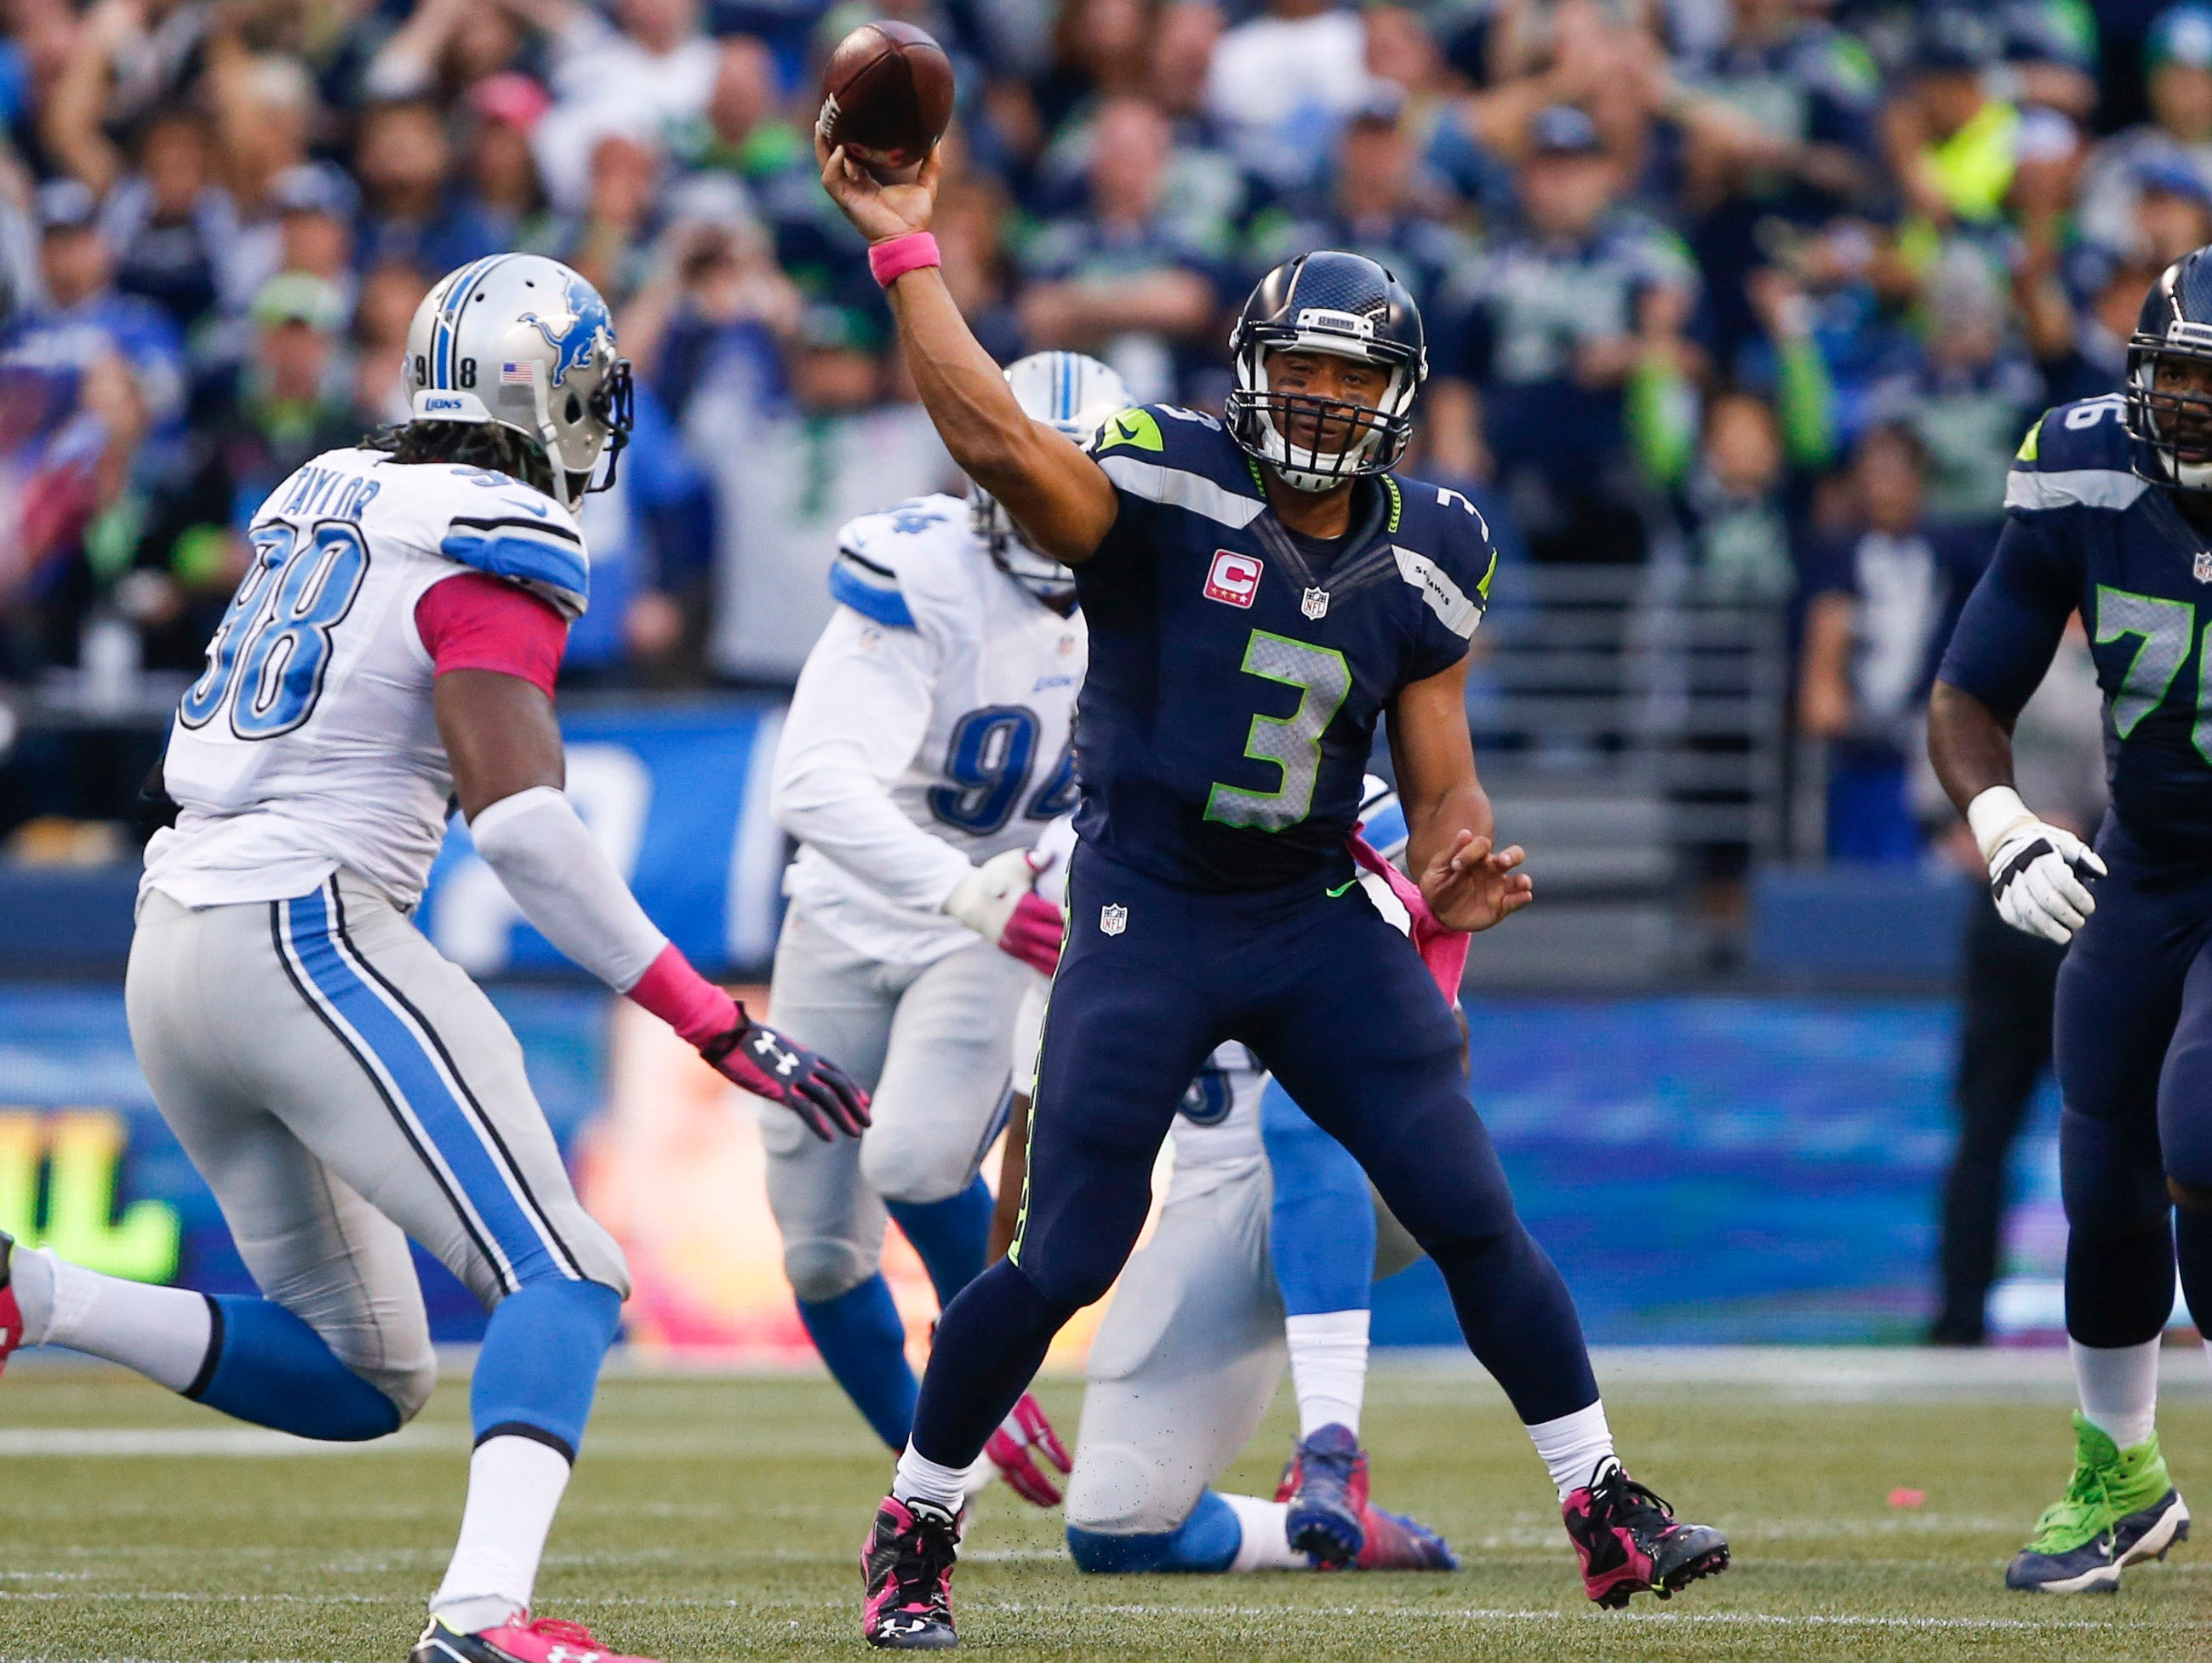 Oct 5, 2015; Seattle, WA, USA; Seattle Seahawks quarterback Russell Wilson (3) passes against the Detroit Lions during the second quarter at CenturyLink Field. Mandatory Credit: Joe Nicholson-USA TODAY Sports